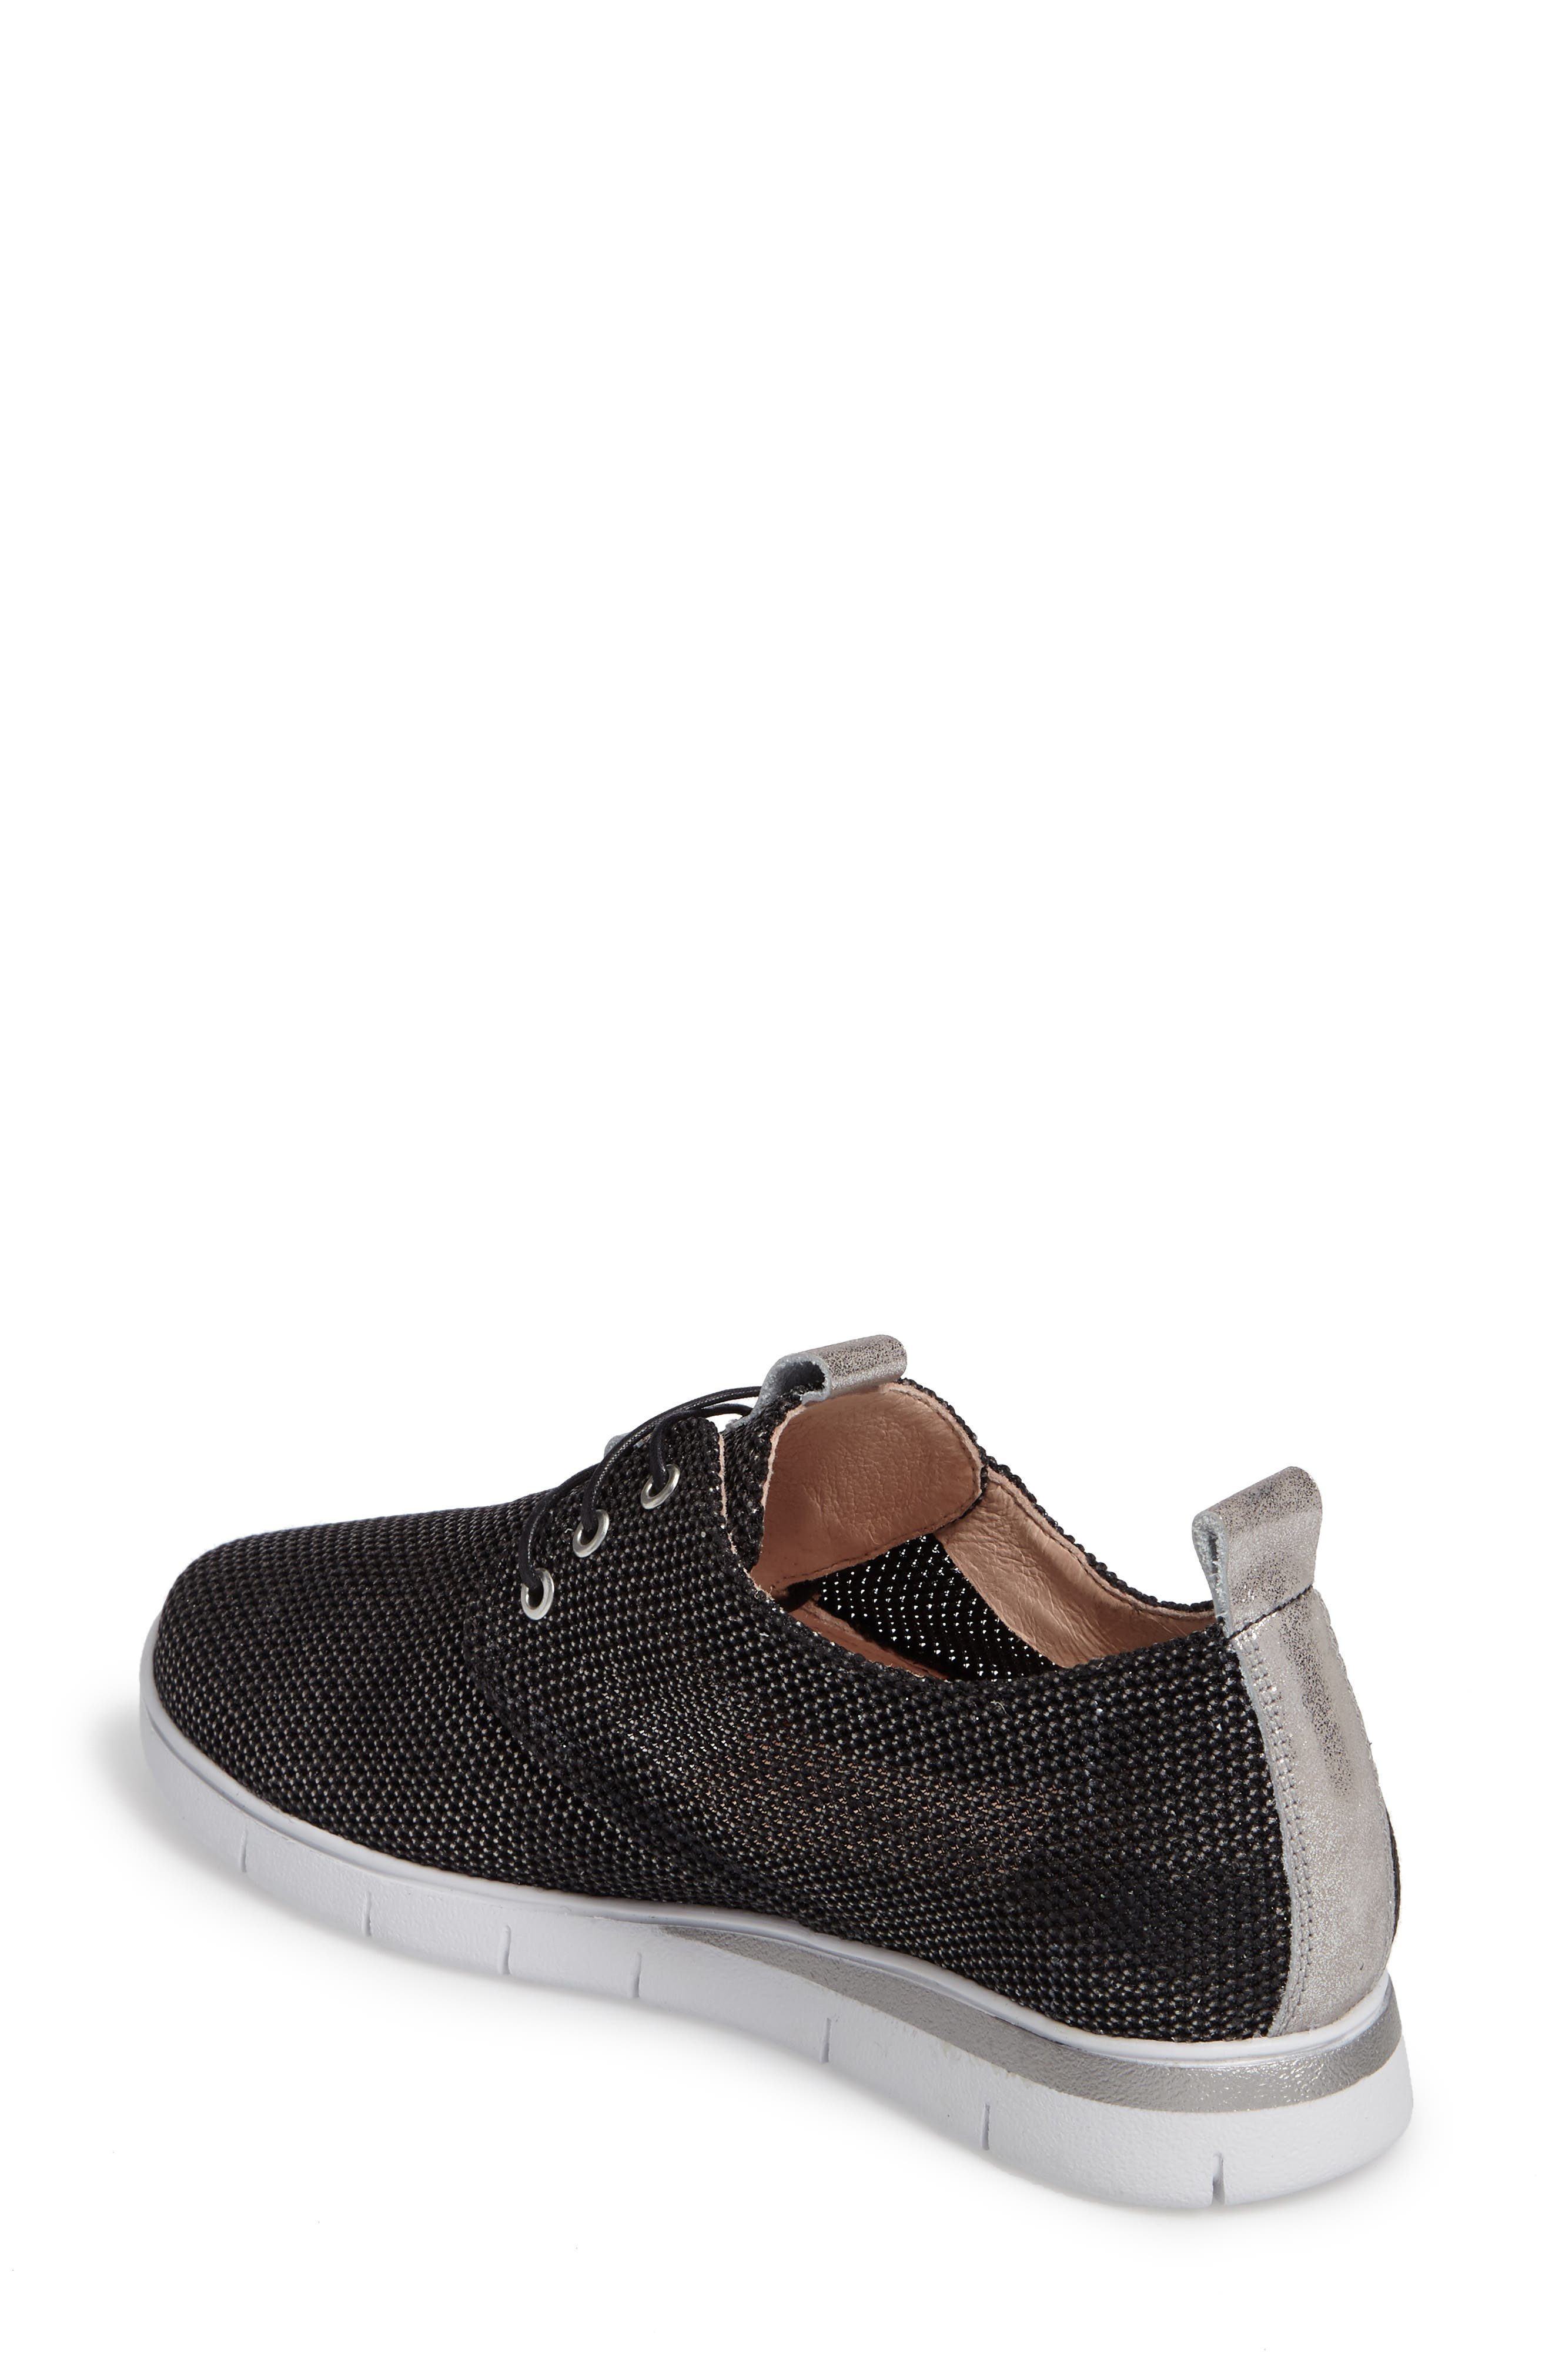 Gala Perforated Sneaker,                             Alternate thumbnail 2, color,                             Bionic Black Leather